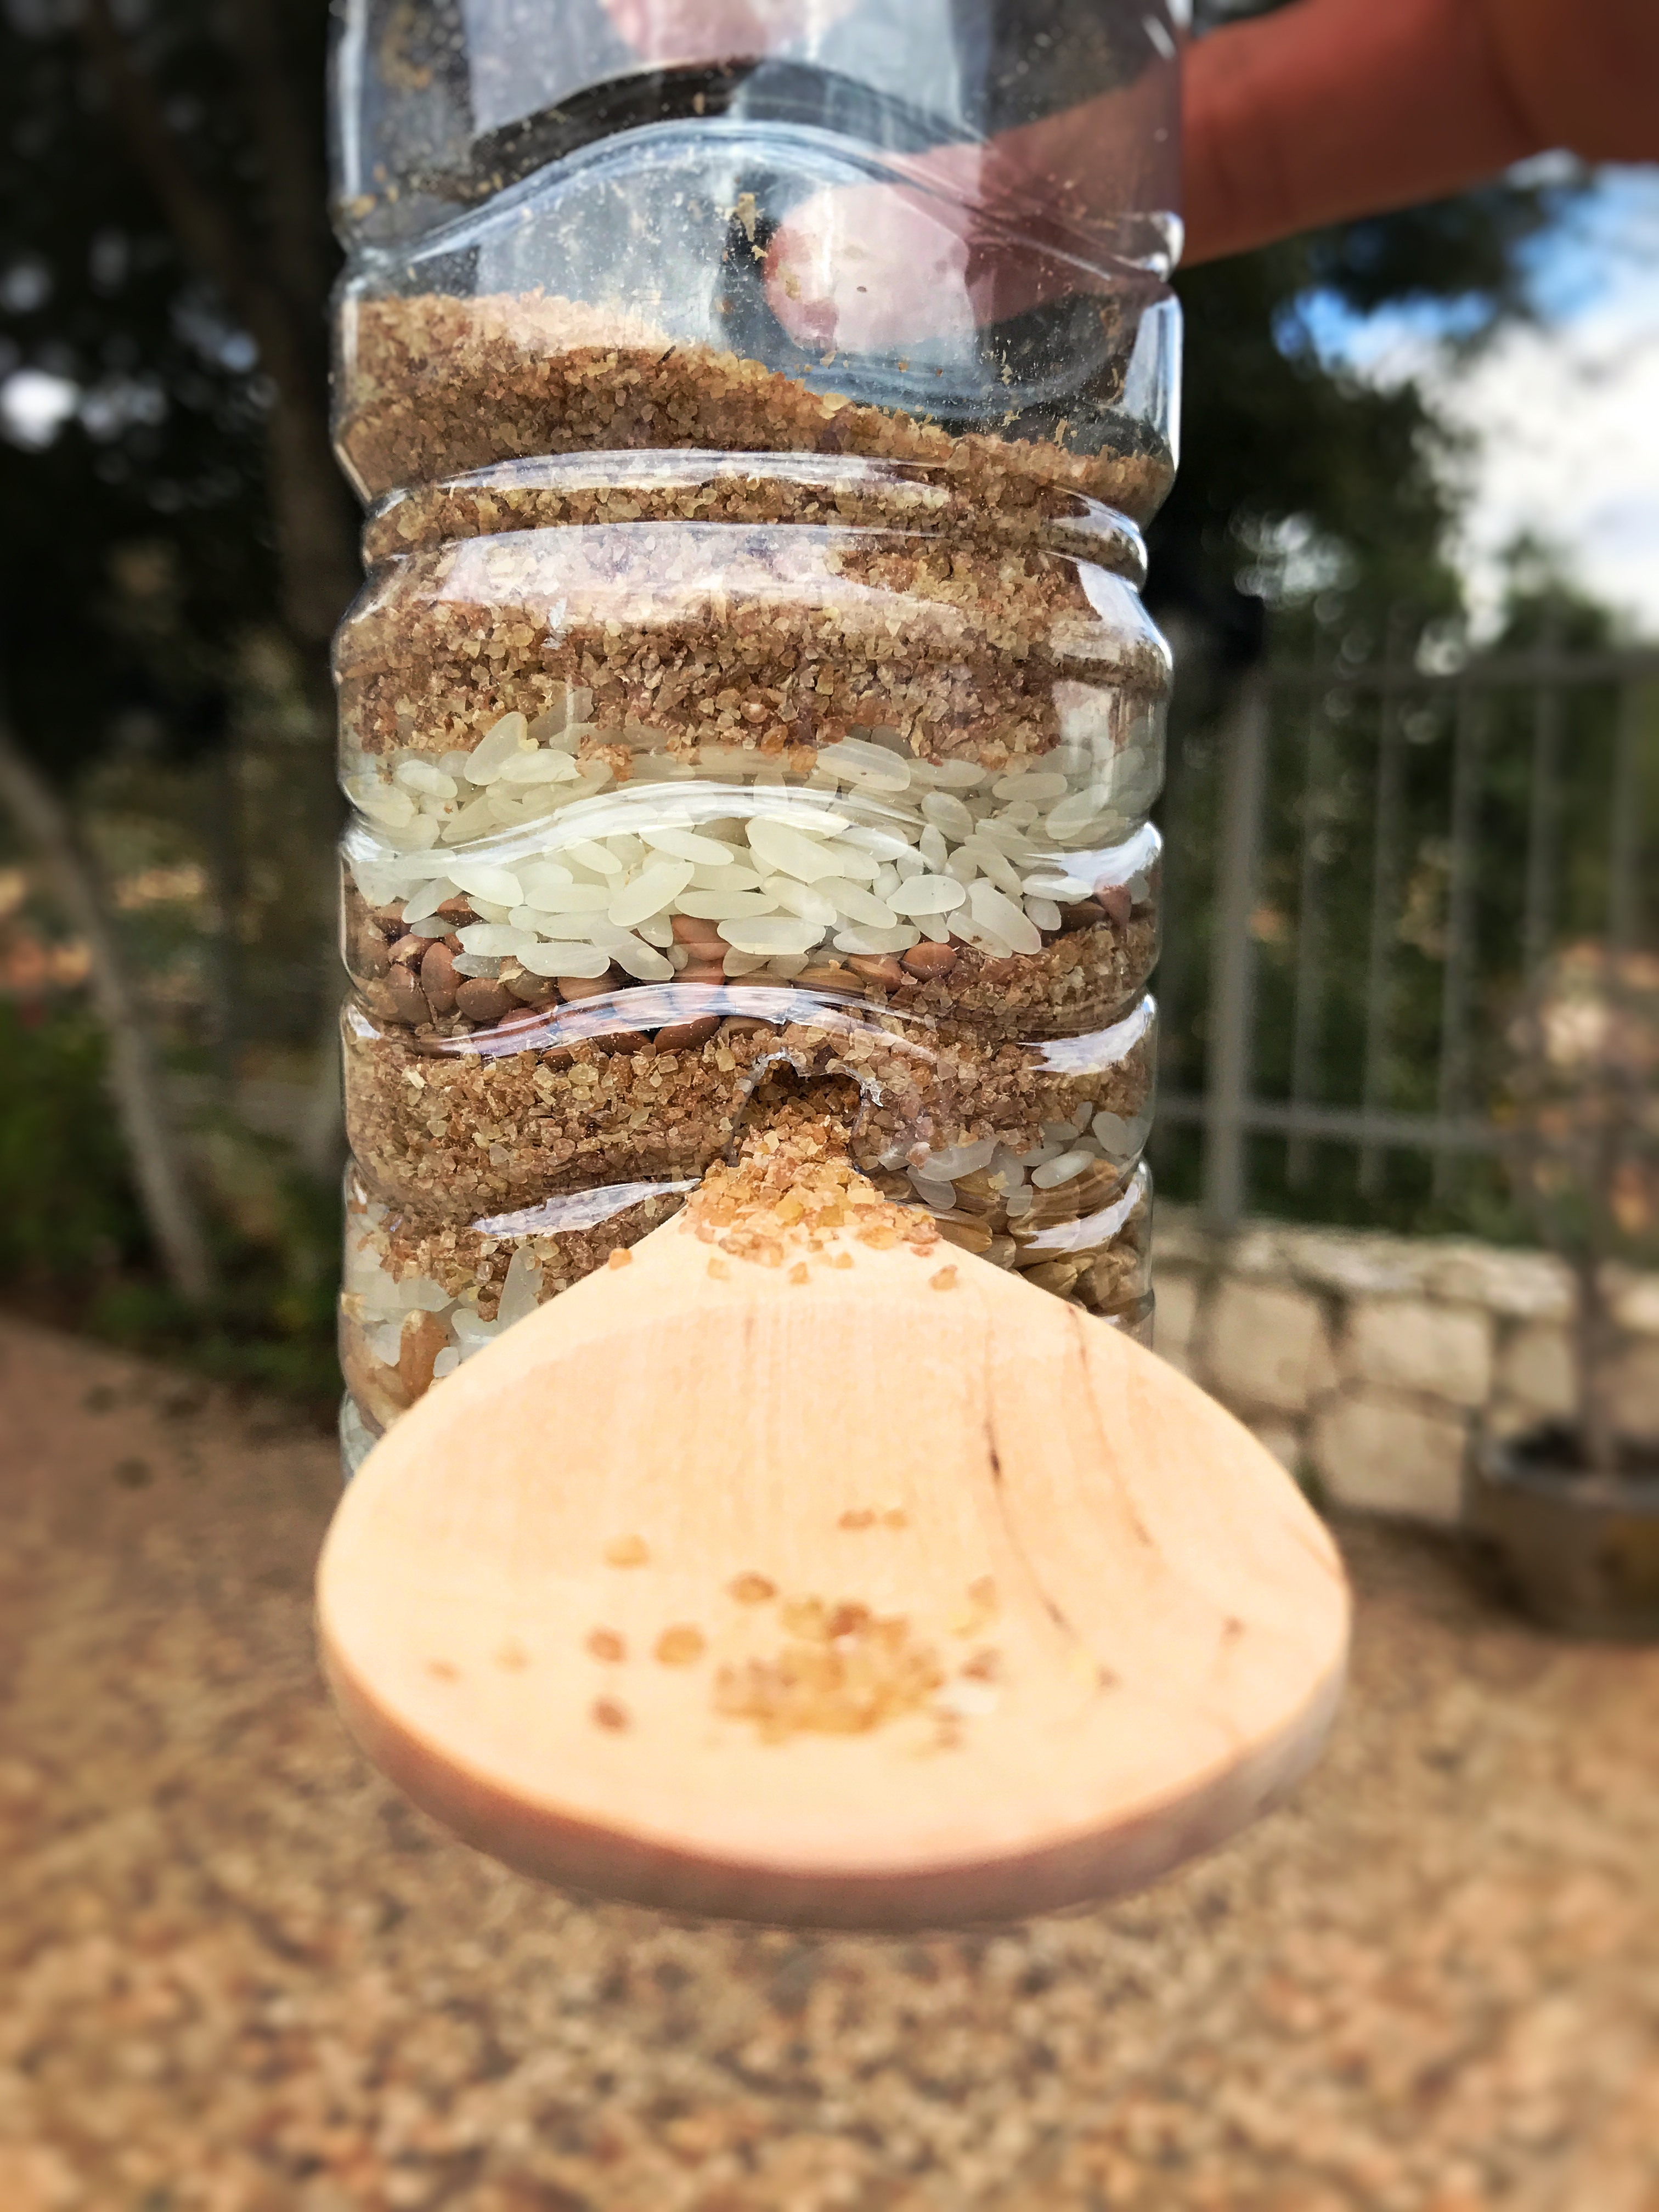 the Upcycled Birdfeeder with a close-up on the spoon